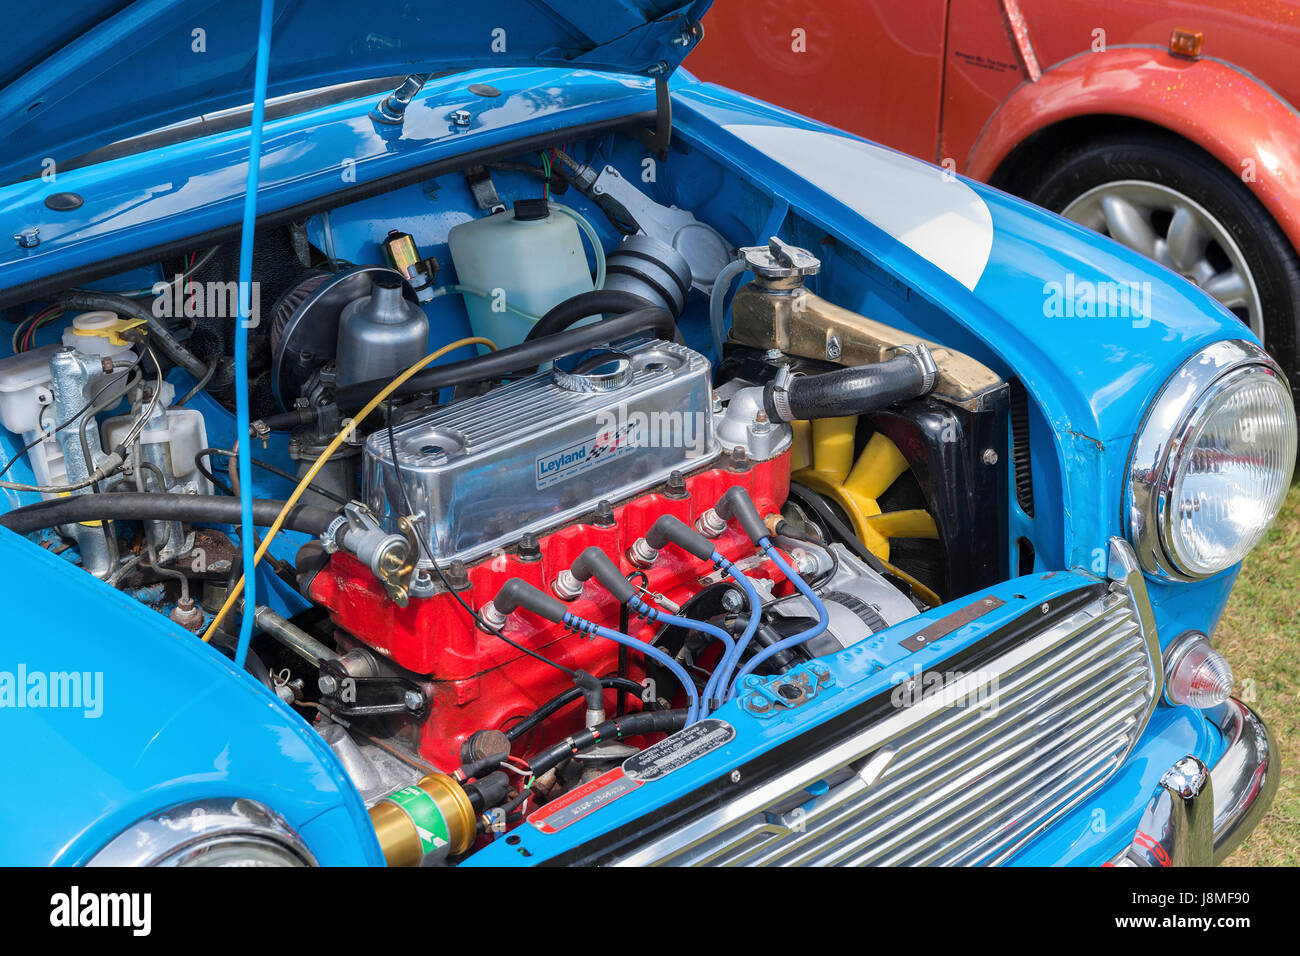 the engine in a classic mini car - Stock Image